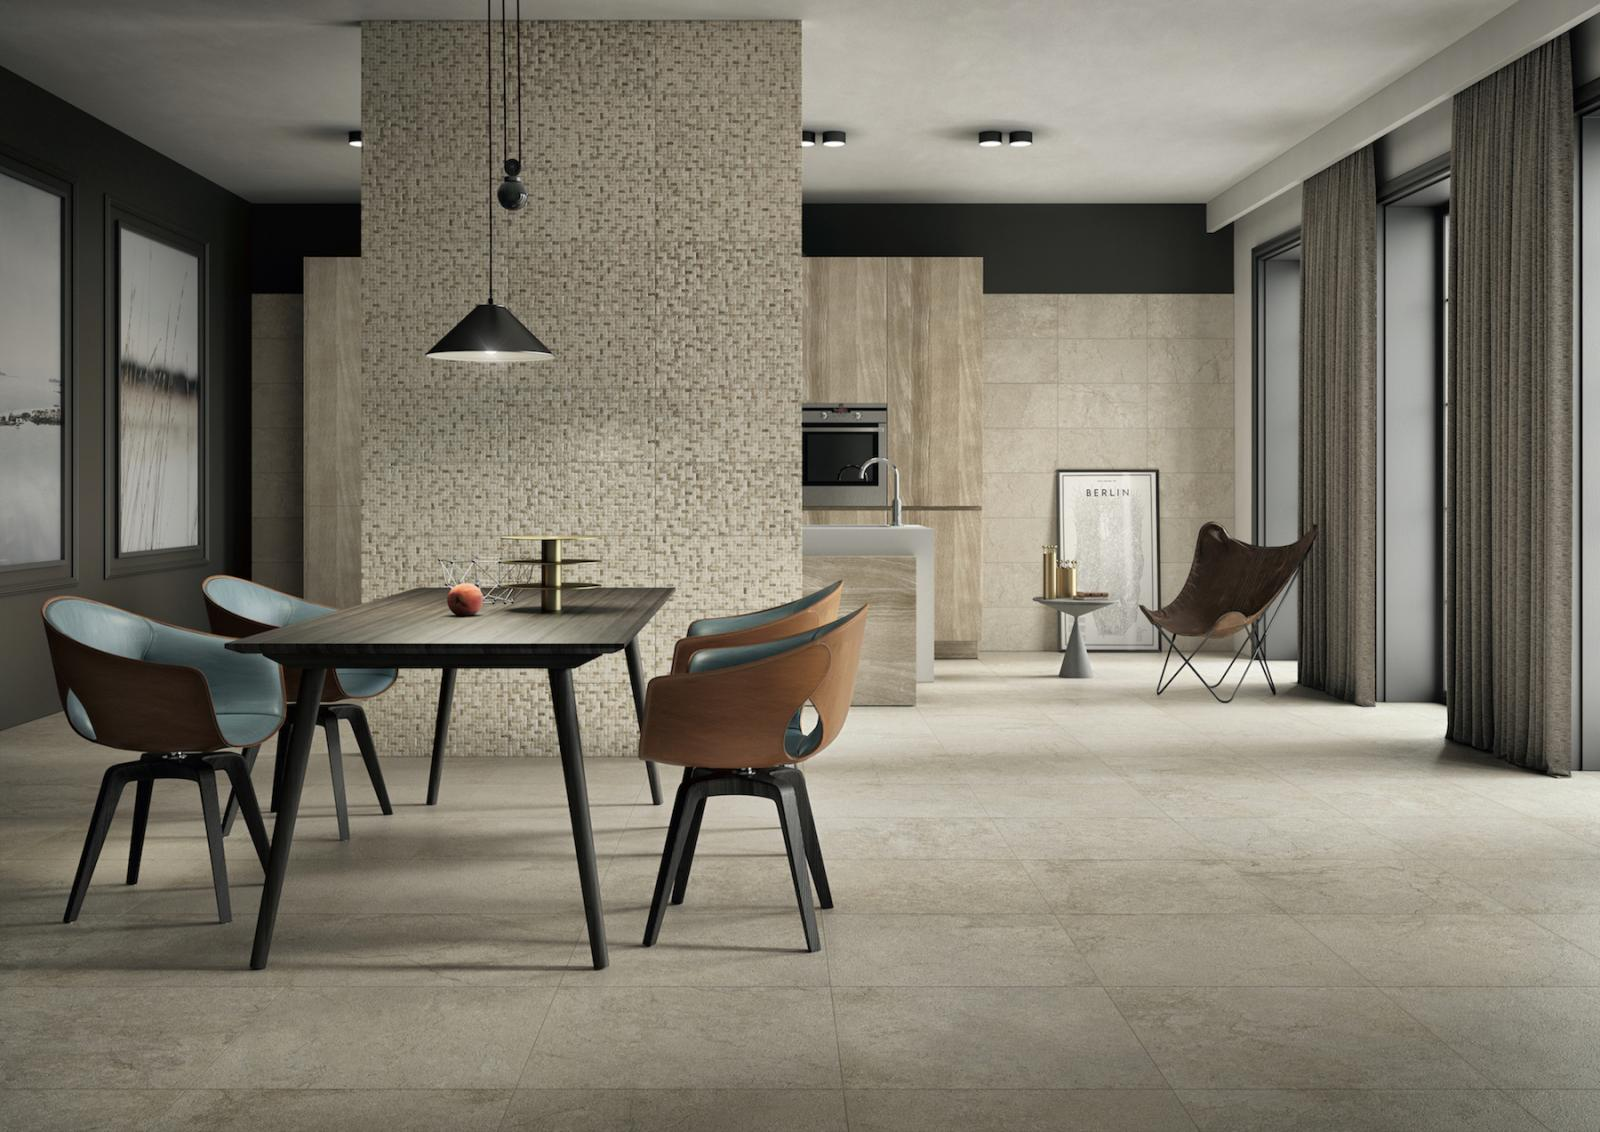 Anteprima cersaie 2018 ceramiche piemme ::: floor and more